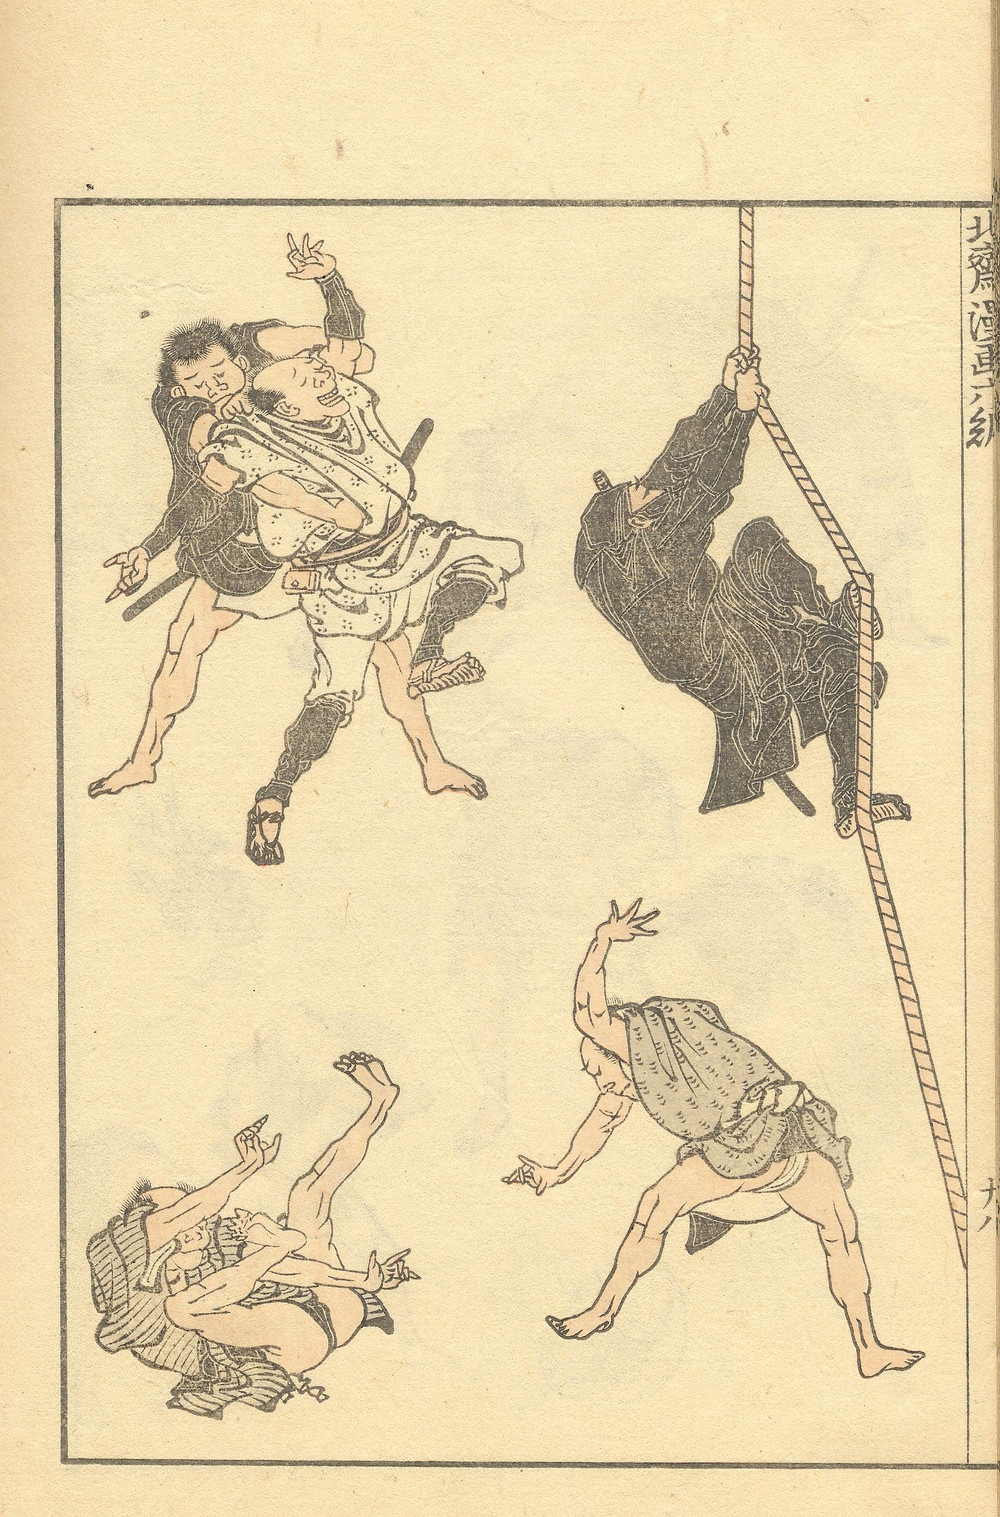 Shinobi illustré dans une esquisse. Manga d'Hokusai. Volume six, 1817.